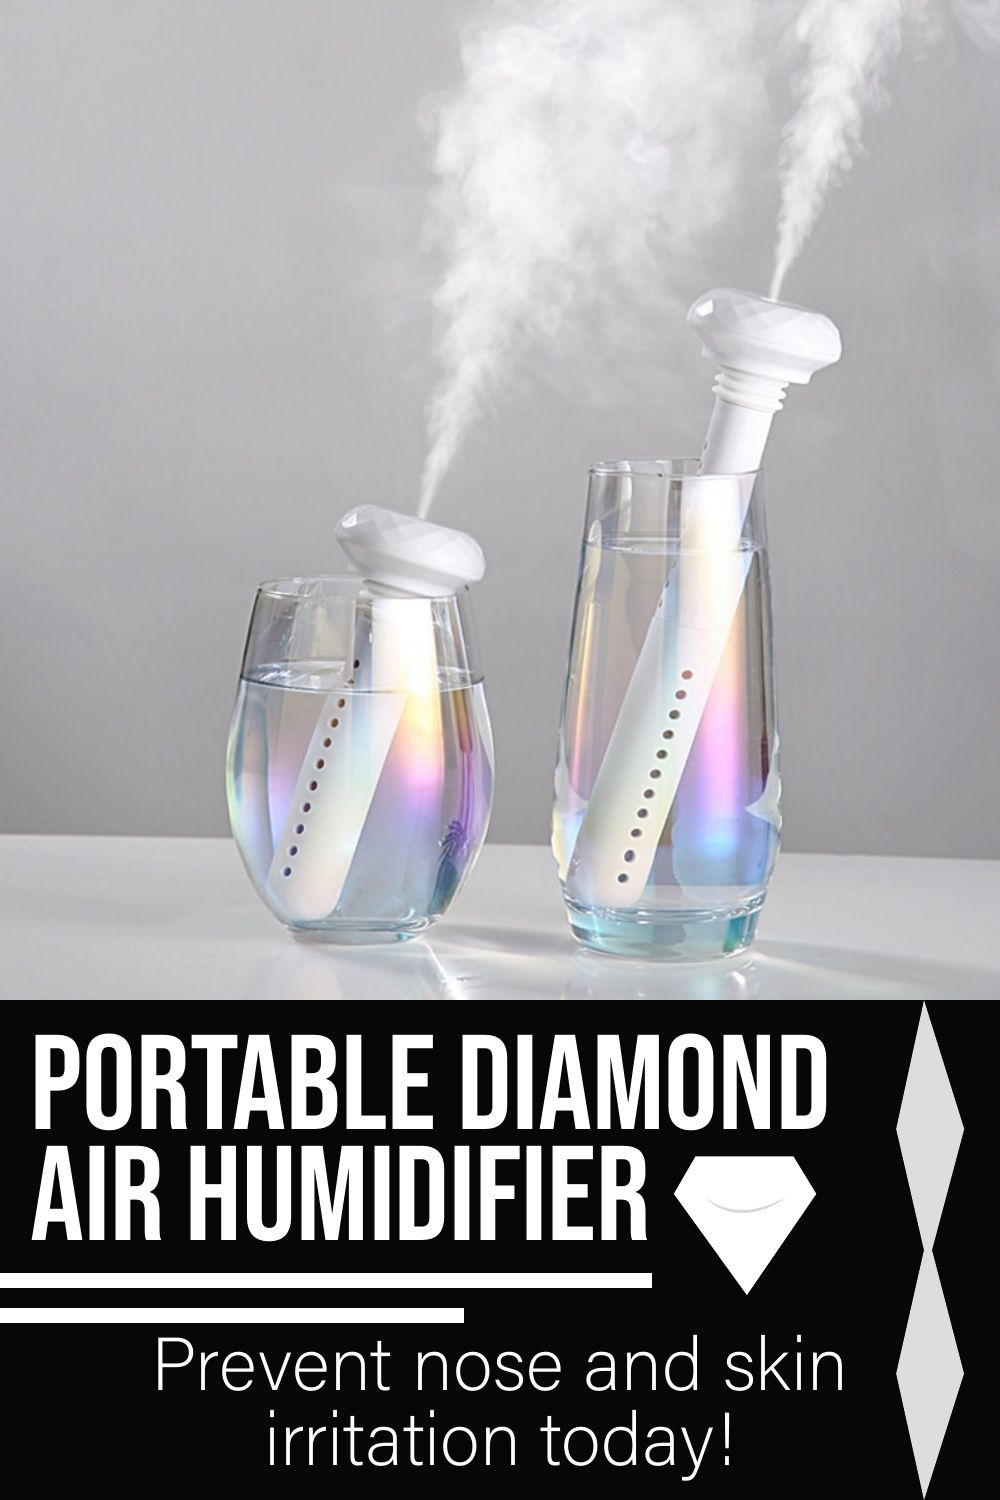 Portable Diamond Air Humidifier In 2020 Air Humidifier Portable Air Purifier Humidifier